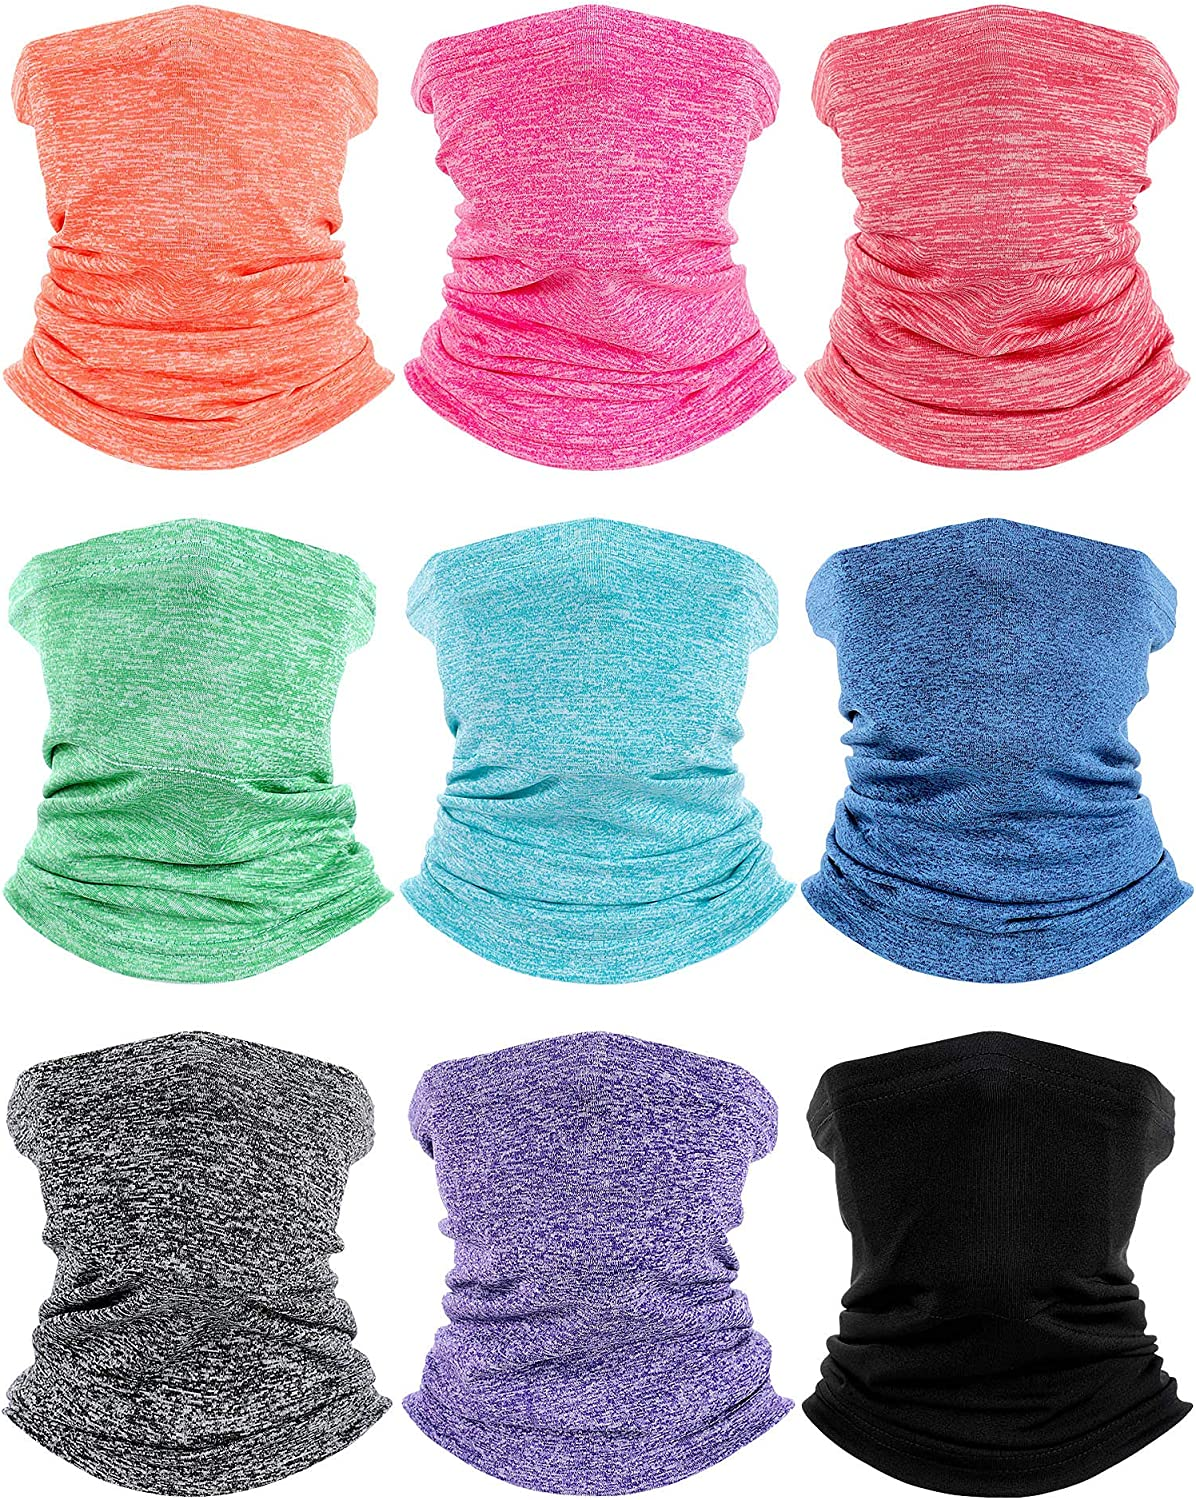 Max 64% OFF Kids Neck Gaiter Al sold out. Bandanas Face Cover Balaclava Breathable Scarf